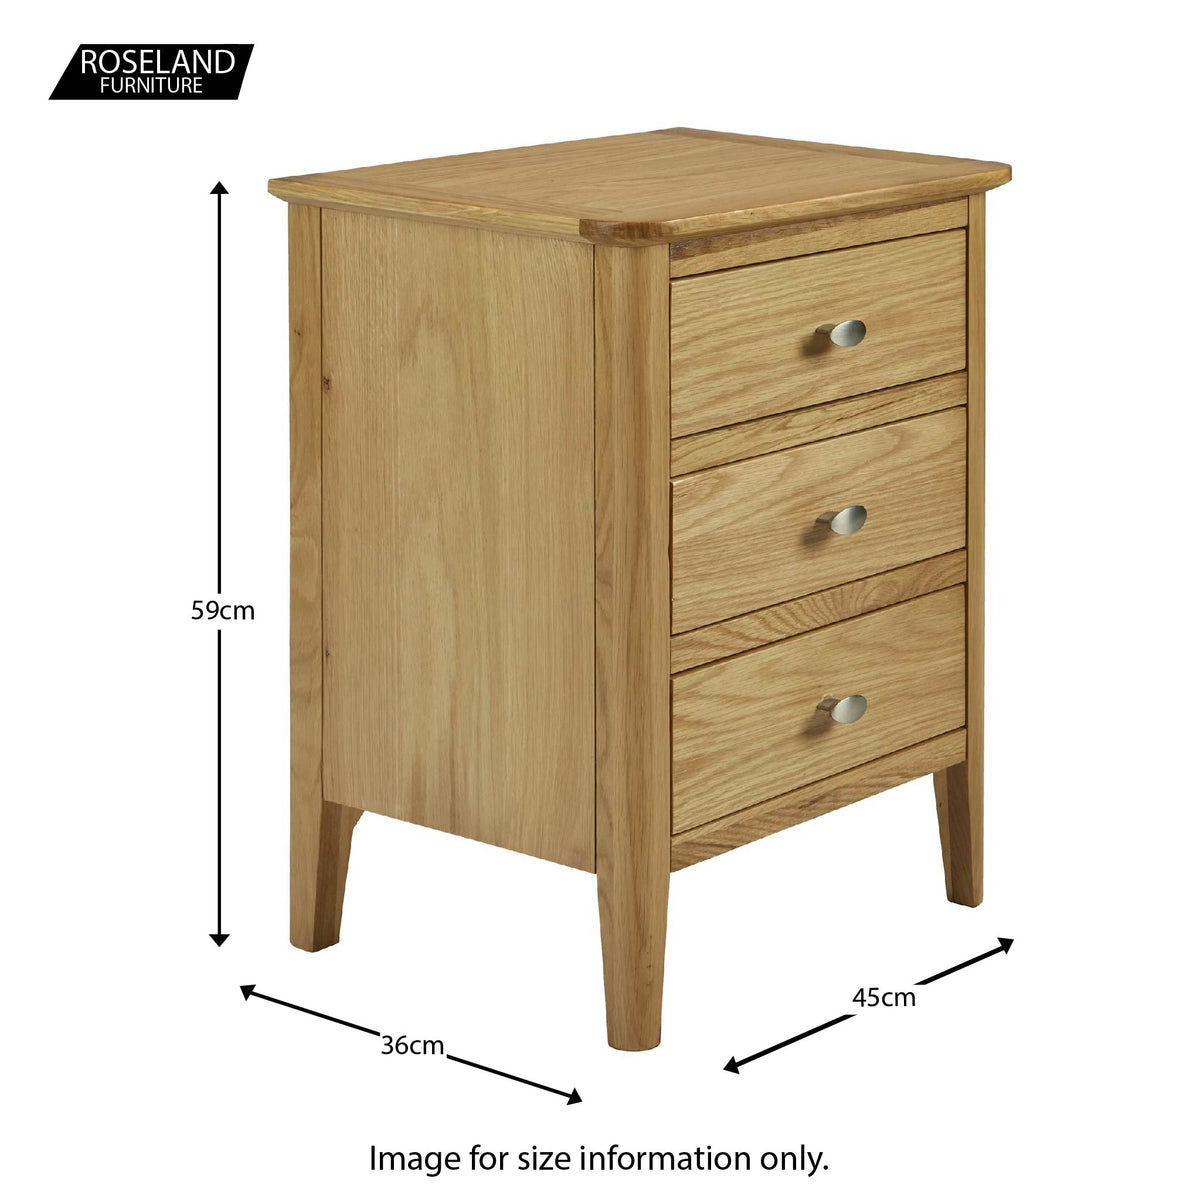 Alba Oak 3 Drawer Bedside Table Unit - Size guide